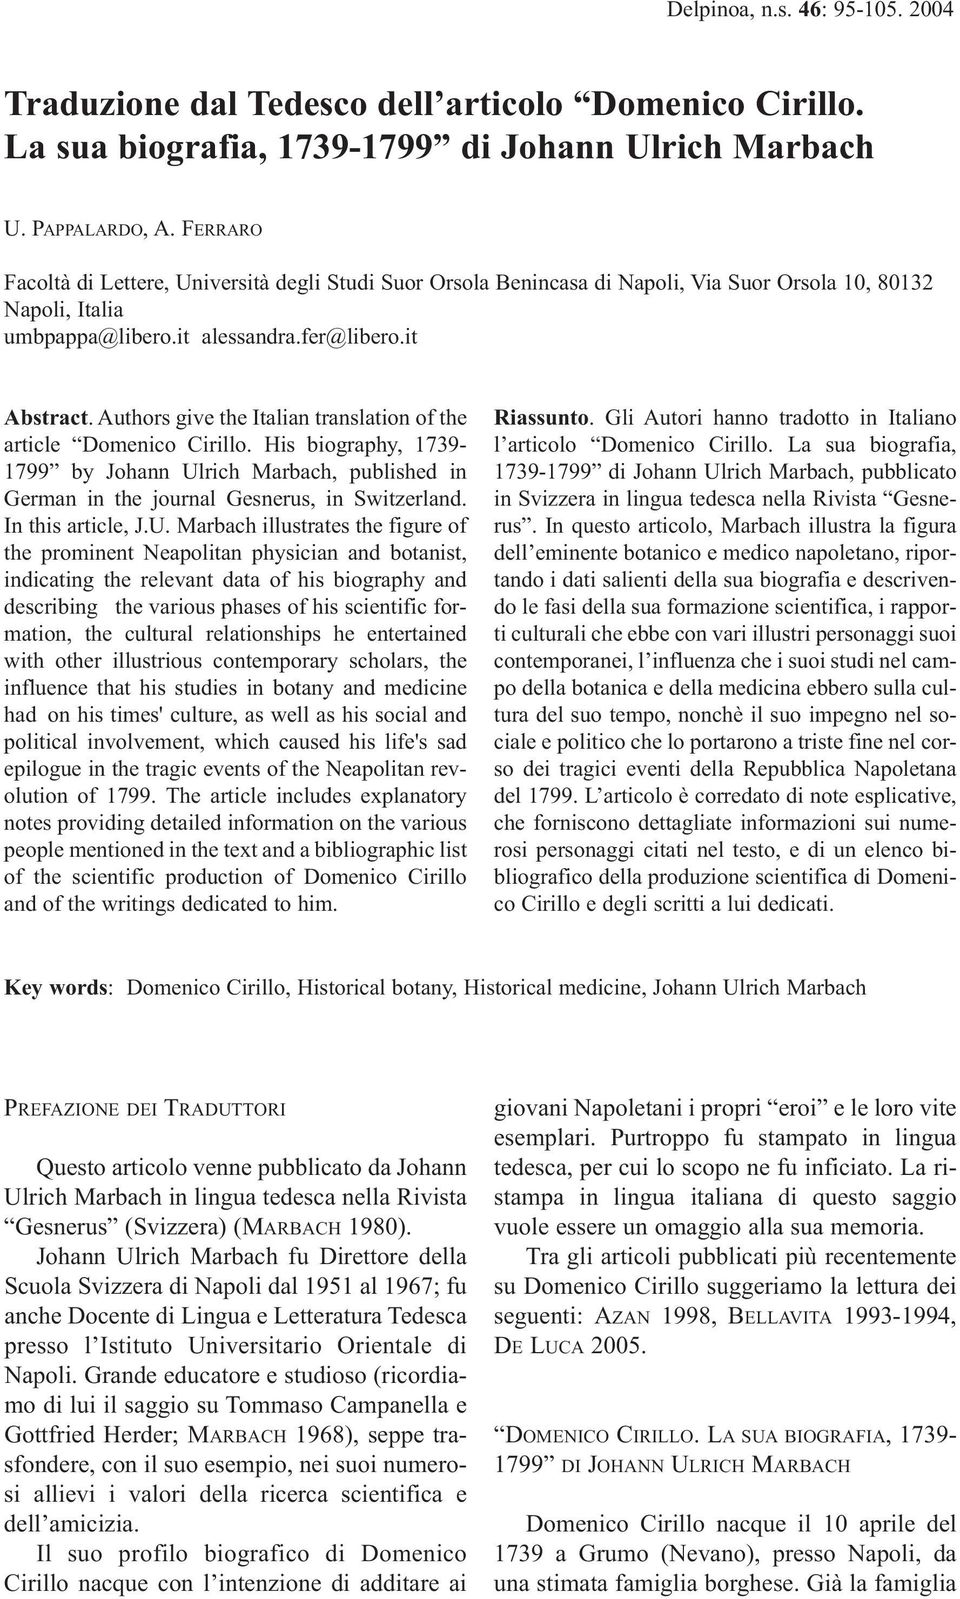 Authors give the Italian translation of the article Domenico Cirillo. His biography, 1739-1799 by Johann Ulrich Marbach, published in German in the journal Gesnerus, in Switzerland.